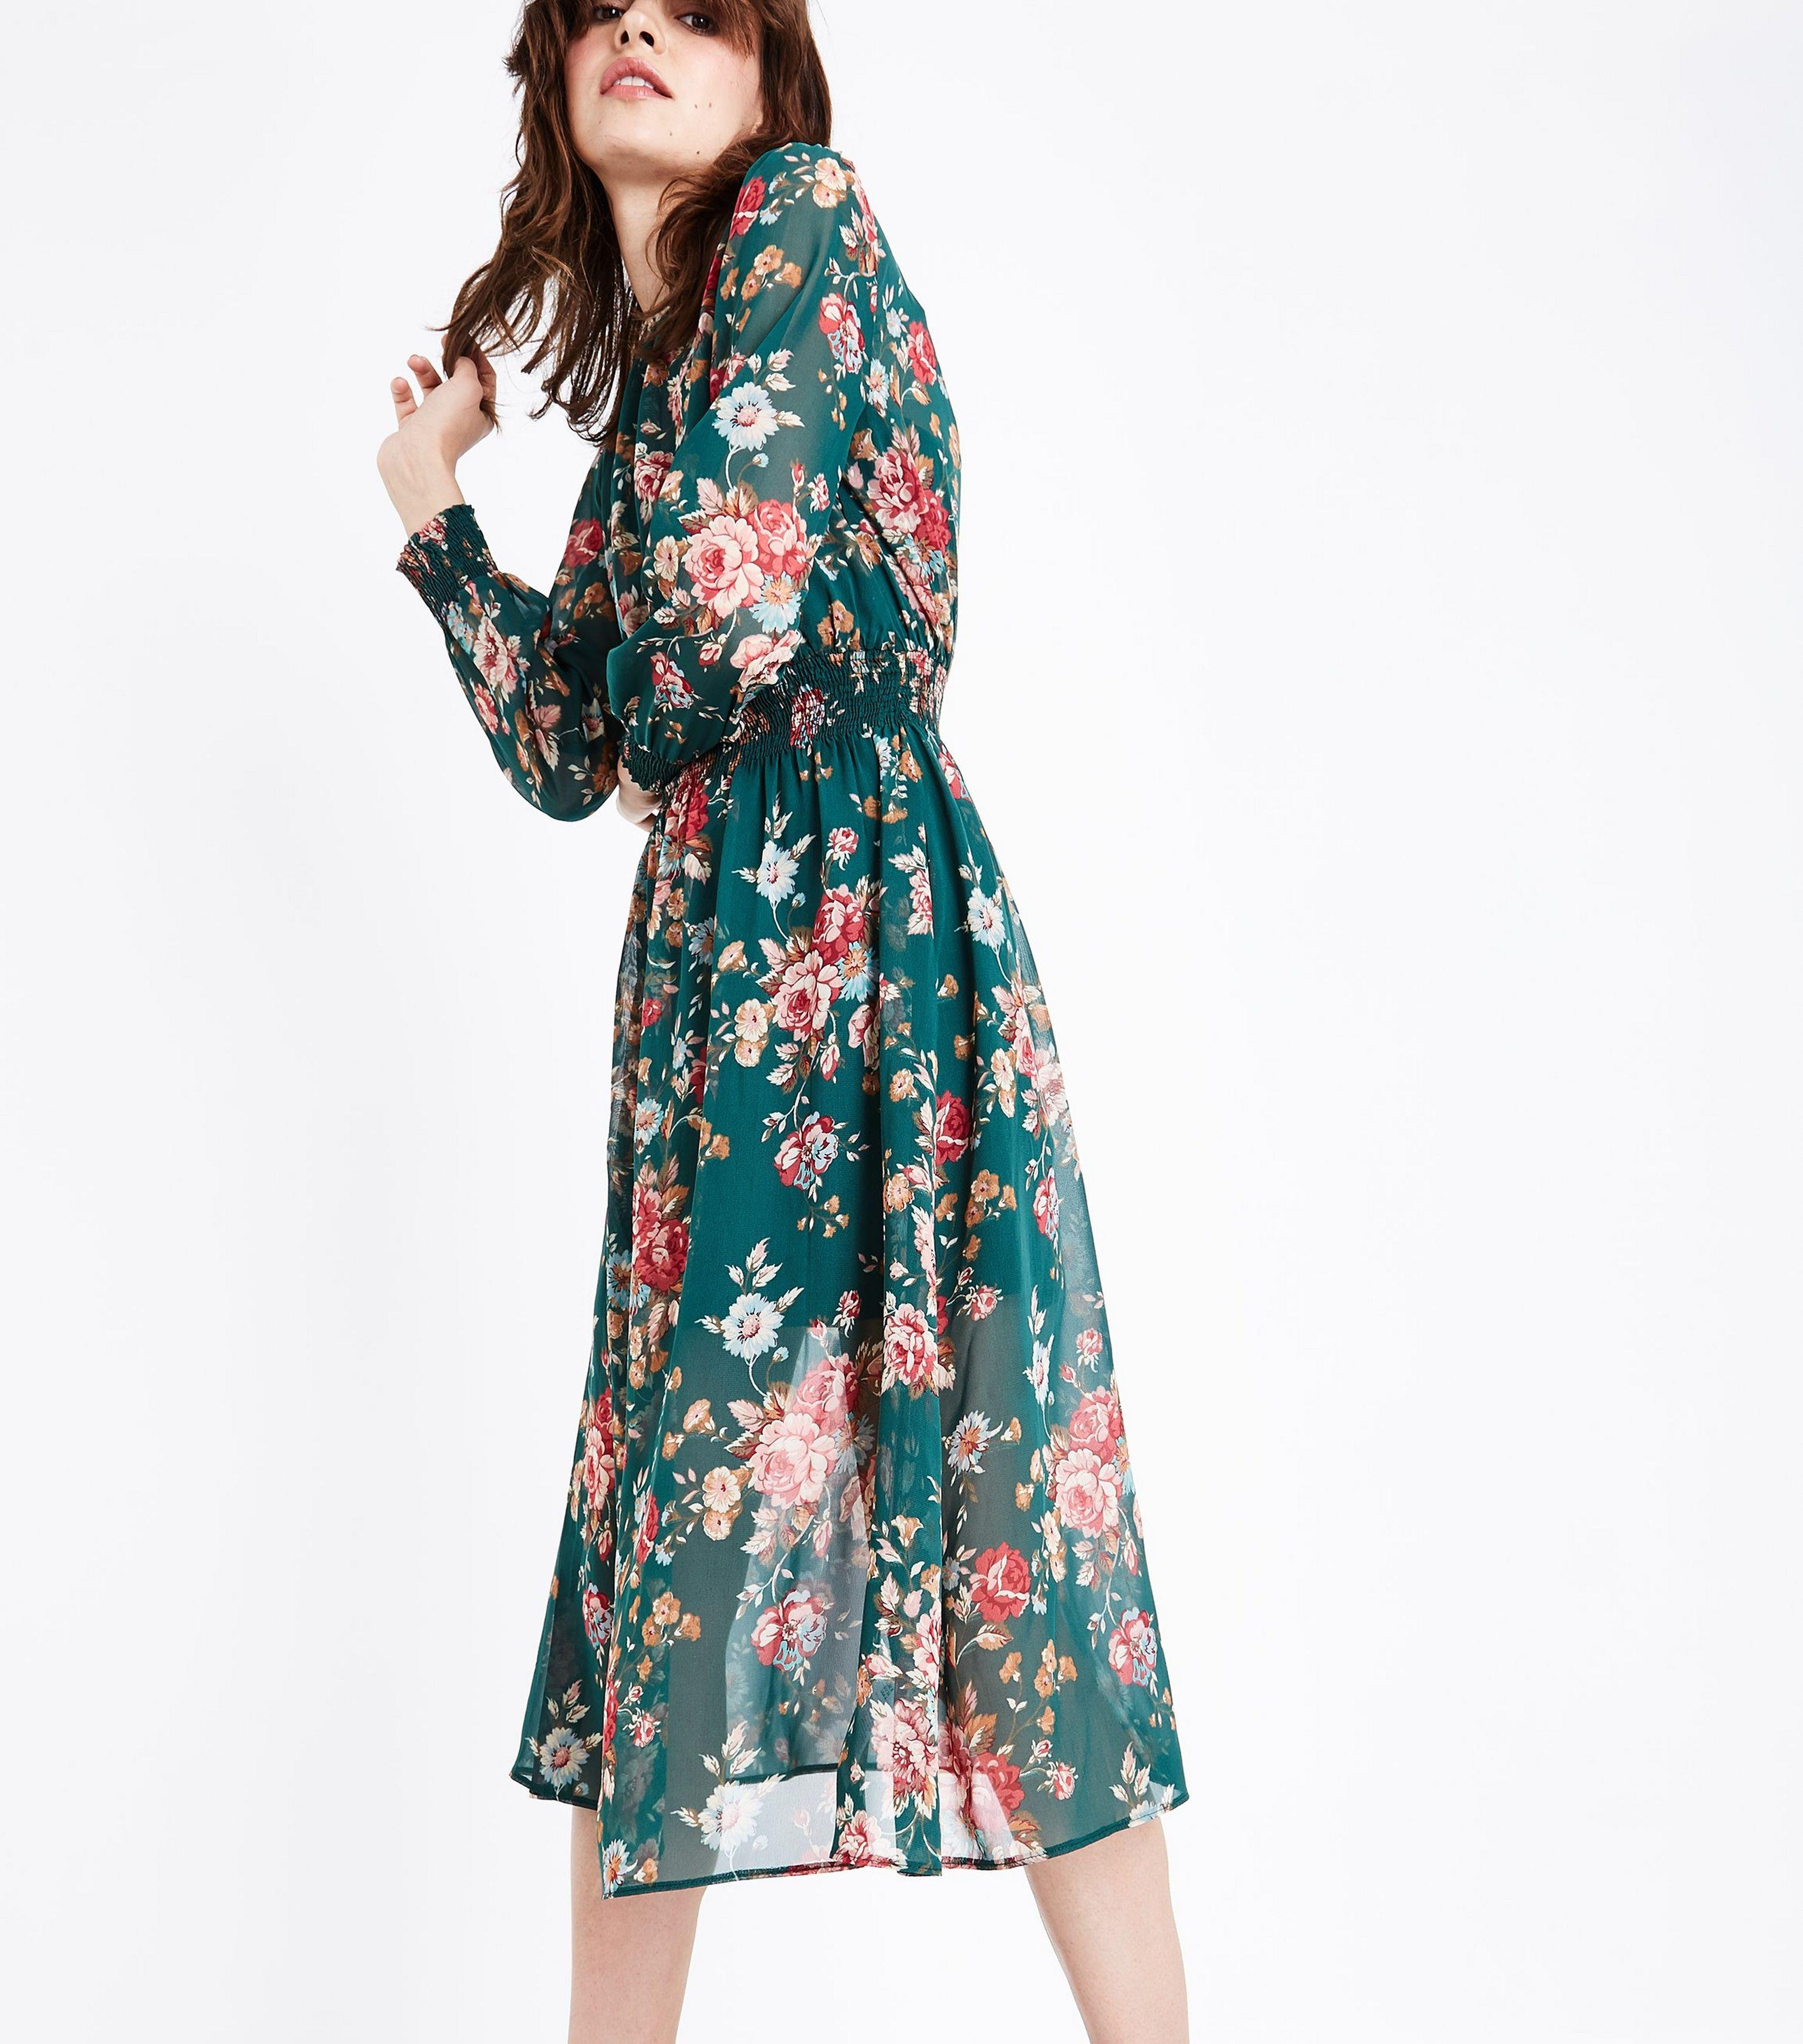 d9ccb49b4 New Look Green Chiffon Floral Print Midi Dress in Green - Lyst